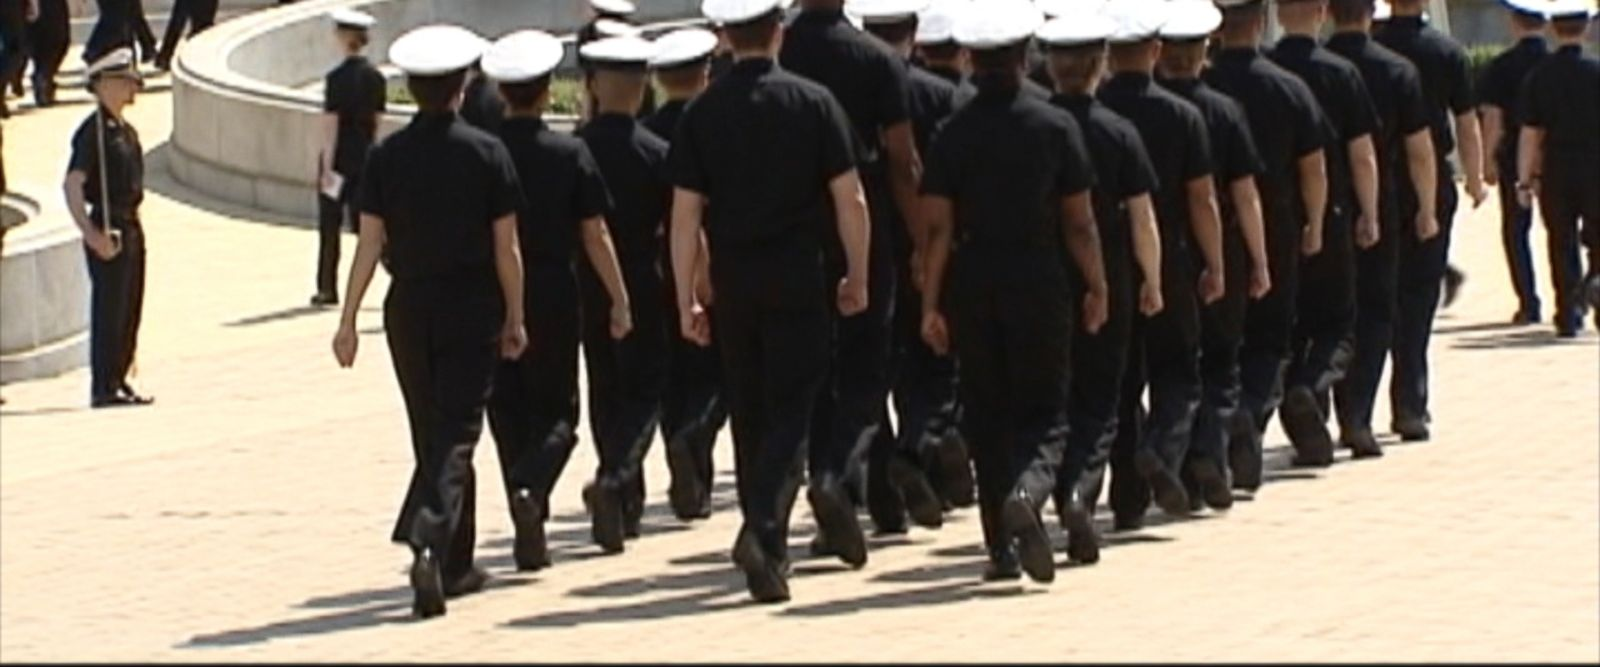 VIDEO:Nine high-ranking U.S. Navy officers have been charged with trading classified information in exchange for travel, dinner and prostitution services from a foreign defense contractor, according to the Justice Department.